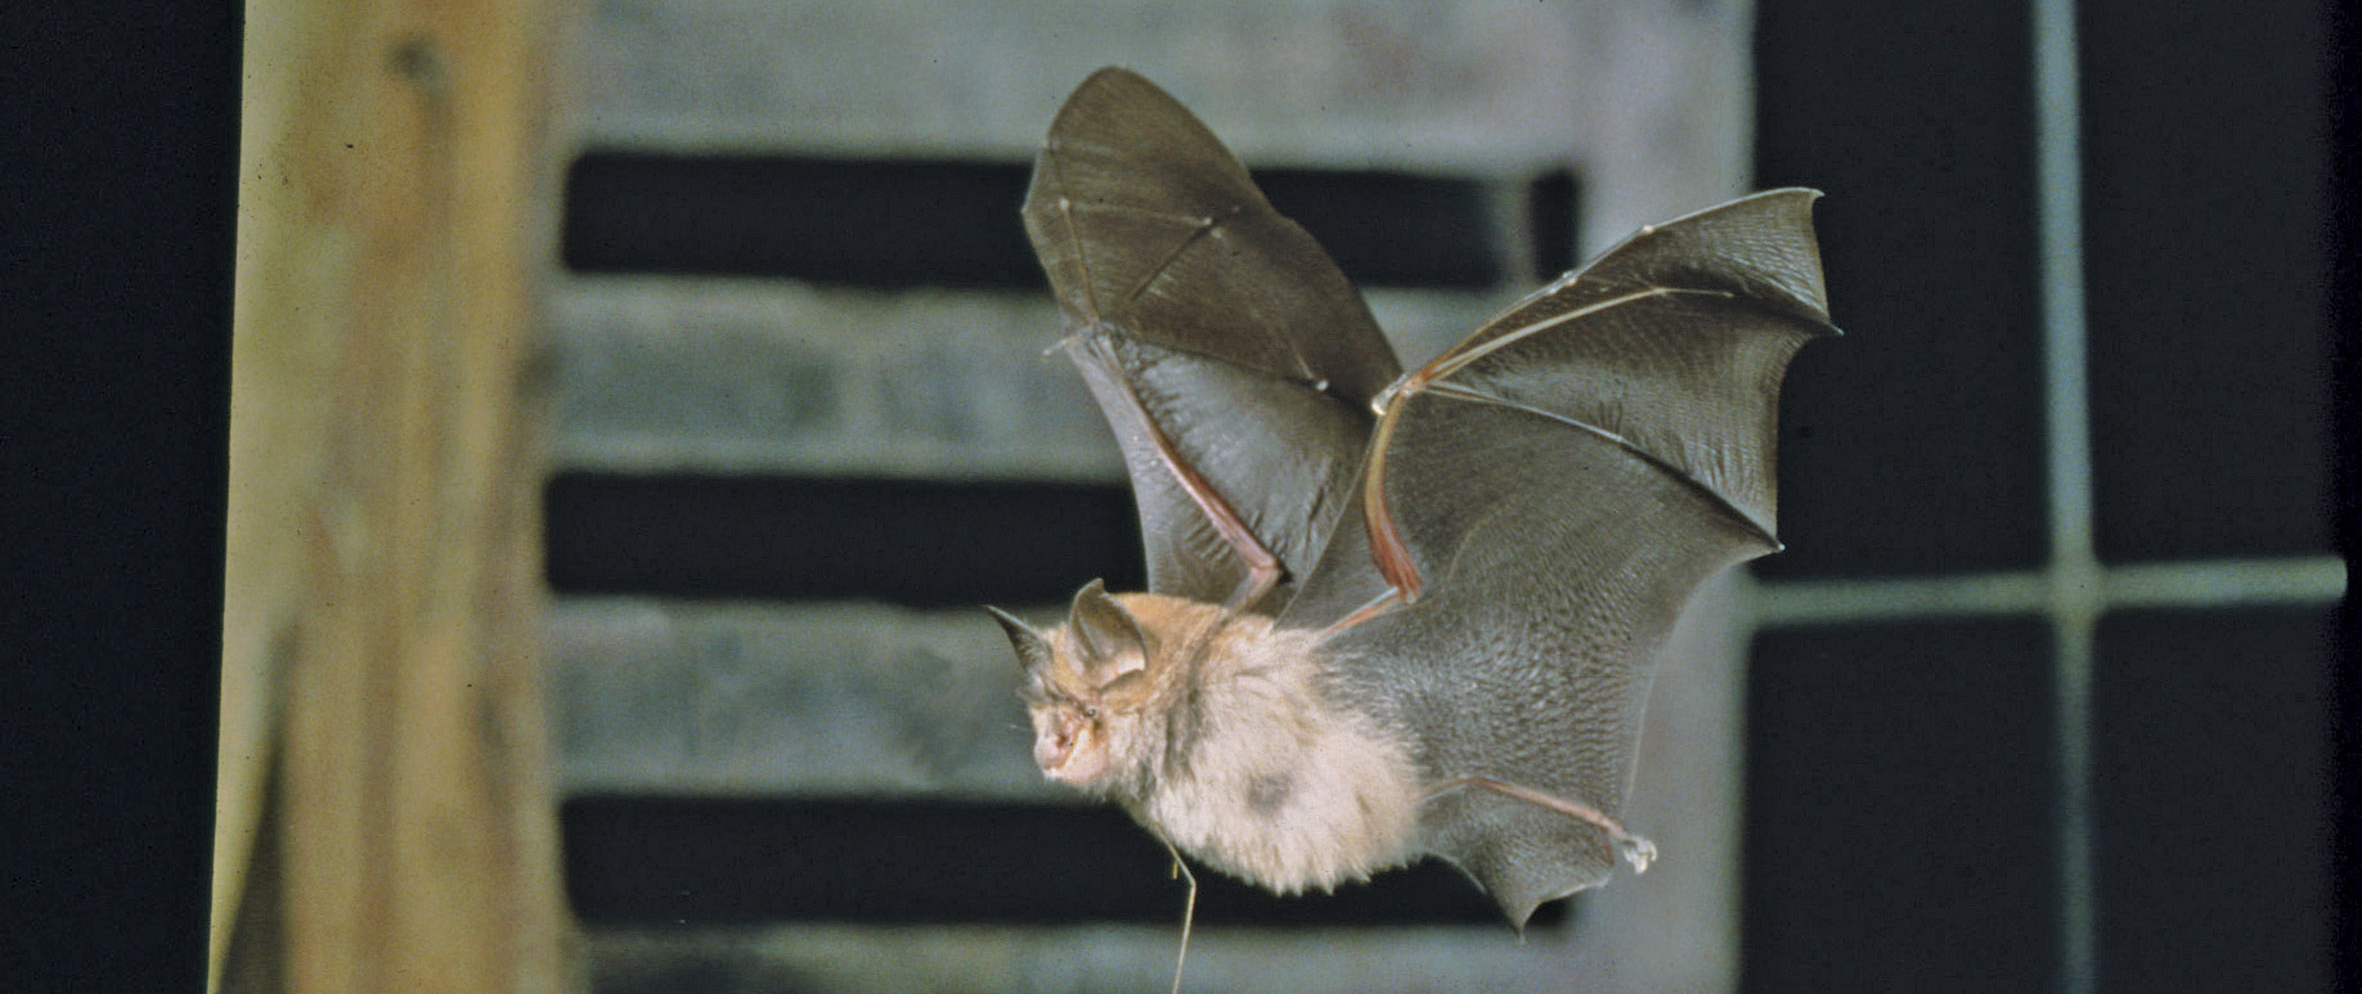 In Britain The Lesser Horseshoe Bat Rhinolophus Hipposideros Is Now Restricted To Wales West Midlands And South England